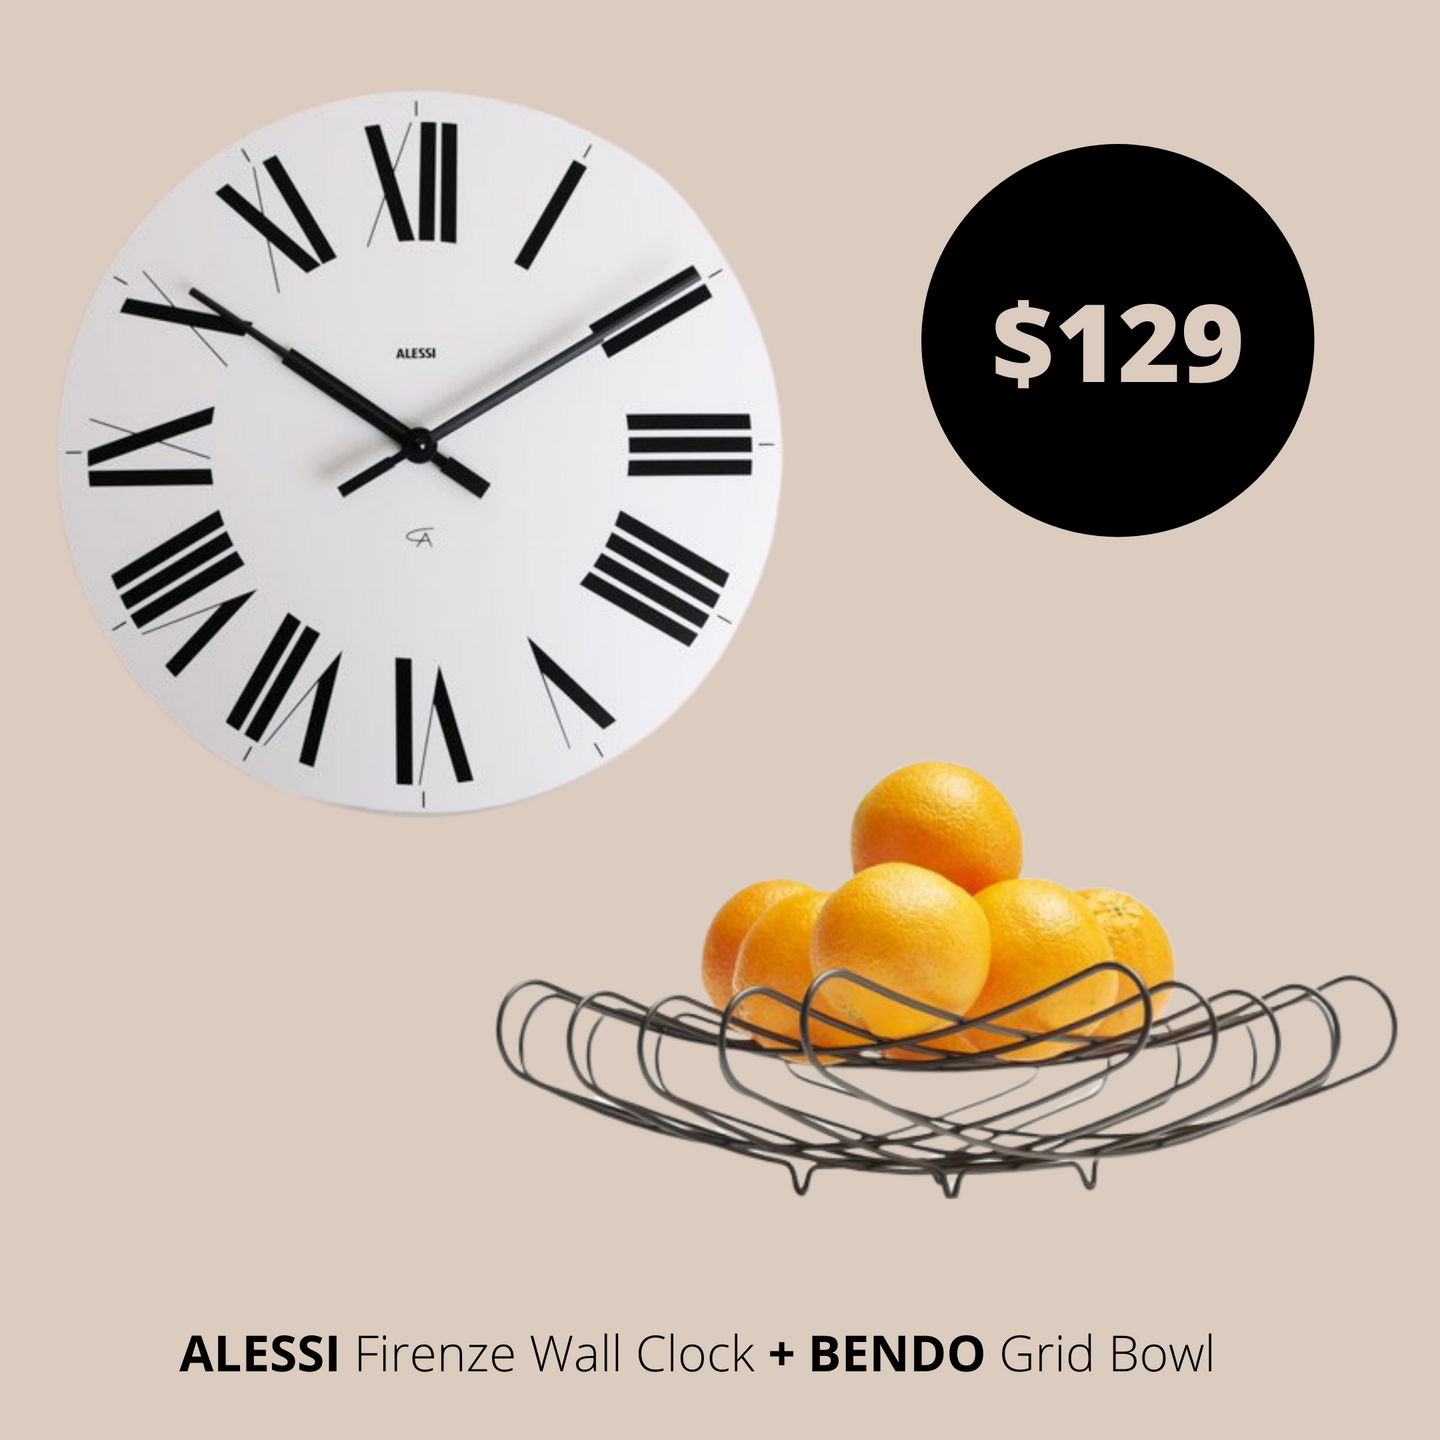 Alessi Wall Clock White + Bendo Bowl Black Bundles Main